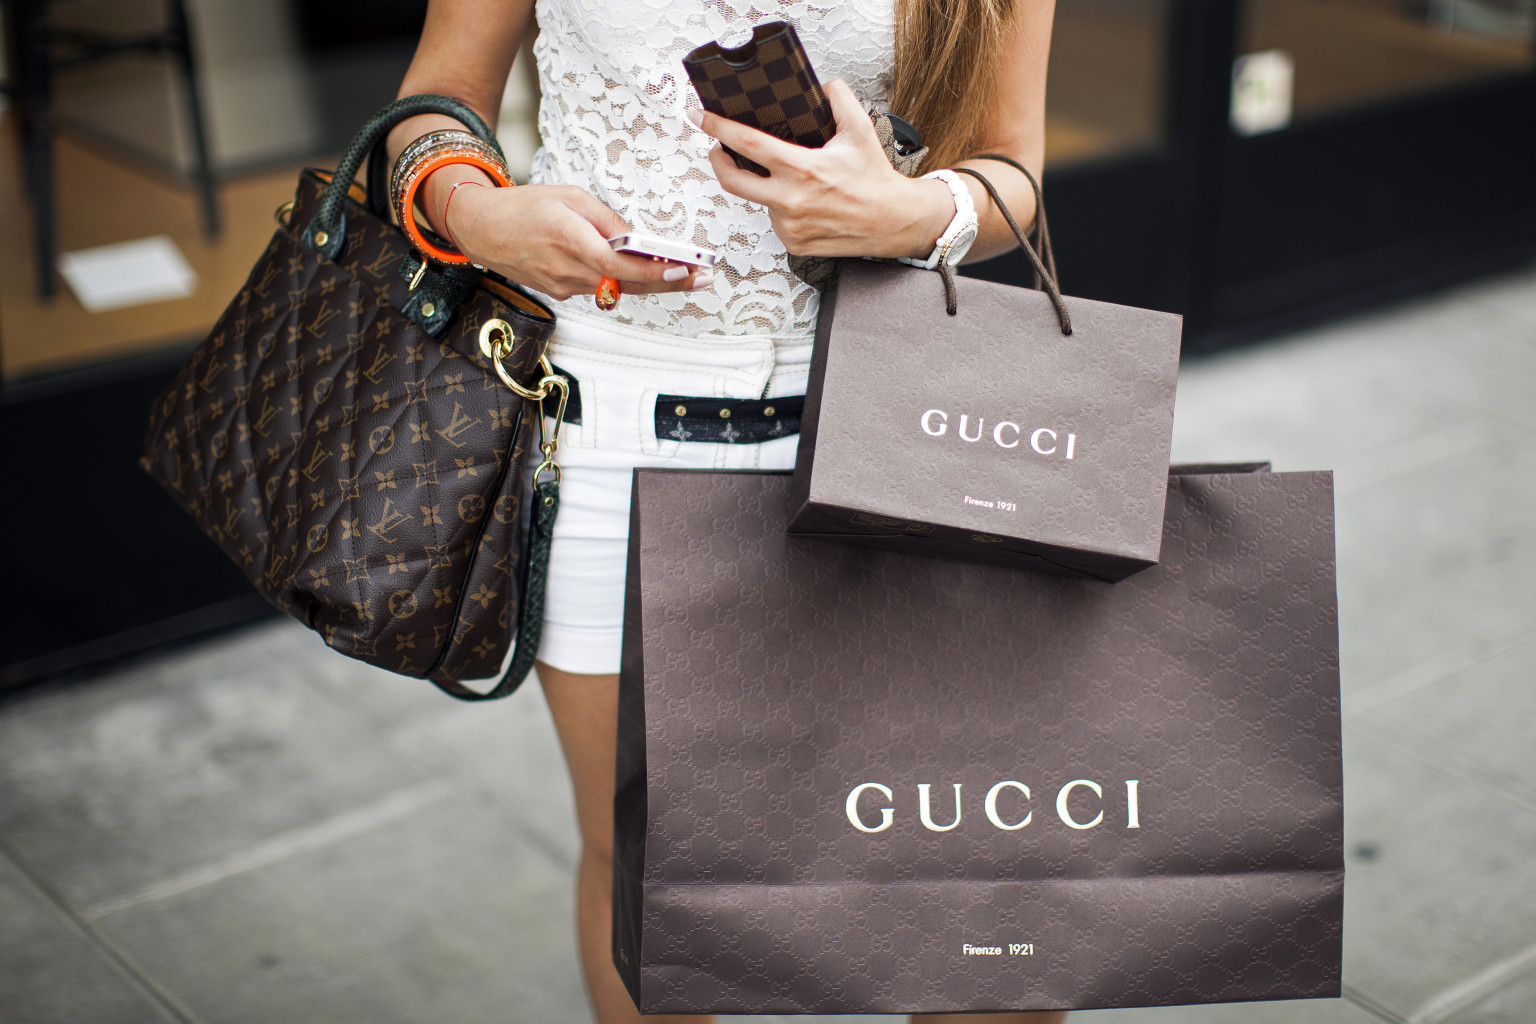 Women Use Designer Bags To Fend Off Jealous Would Be Man Stealers Study Claims Huffpost